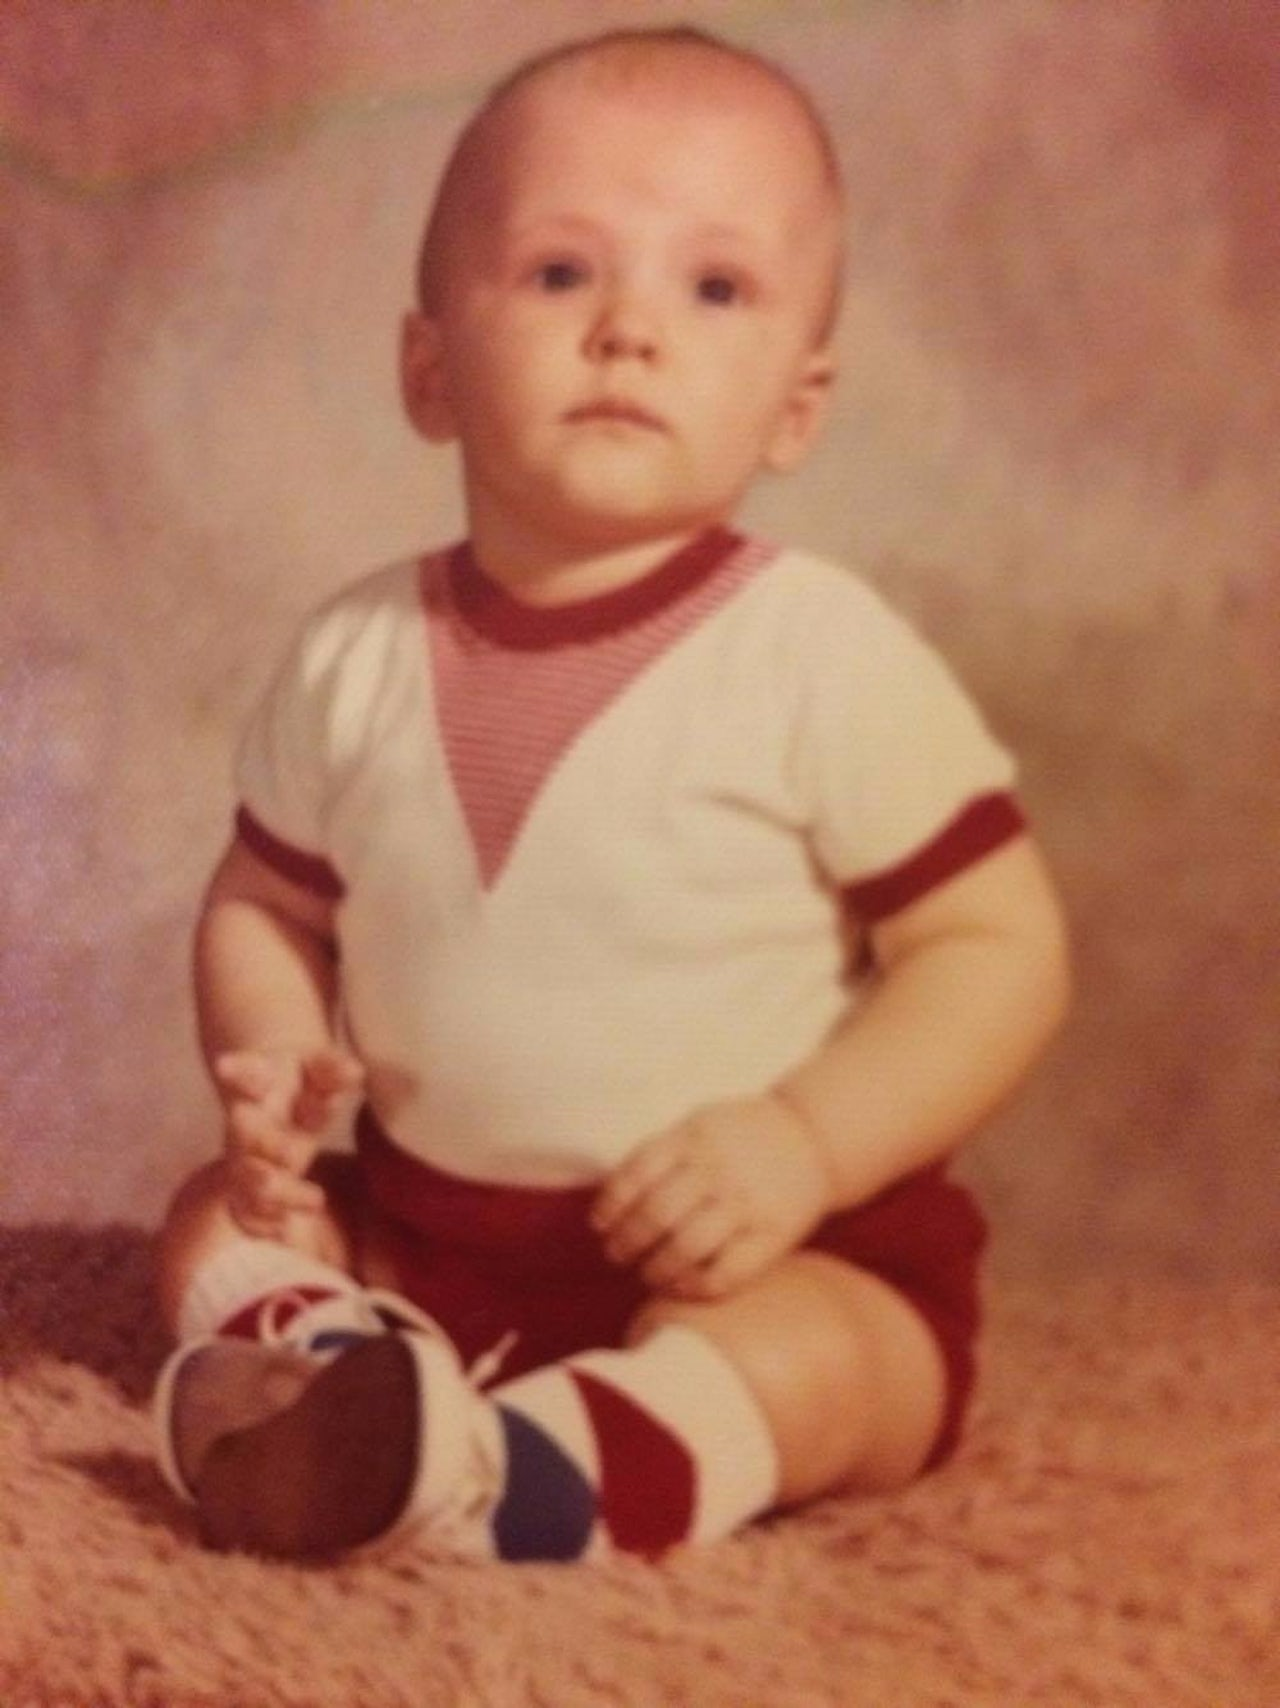 Jim Pete, shown here as an infant, was told by his parents around age six that he had been adopted as a baby. Forty years later he would follow through with the search that would lead him to his birth mother.